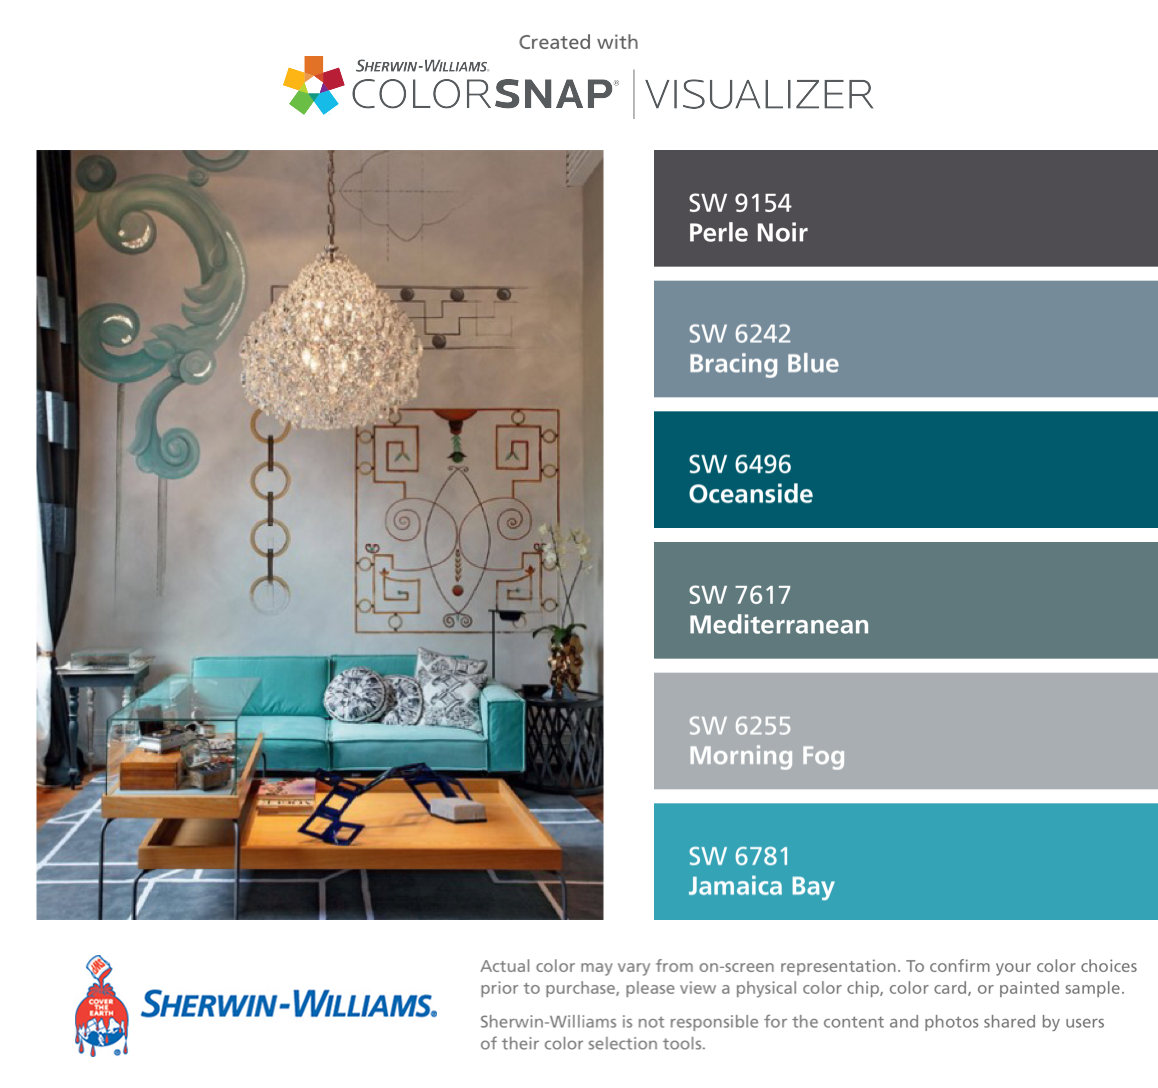 Color Visualizer for Your Inspiration on Color and Cutting Edge Design: Exterior House Paint Color Visualizer | Sherwin Williams Visualizer | Color Visualizer